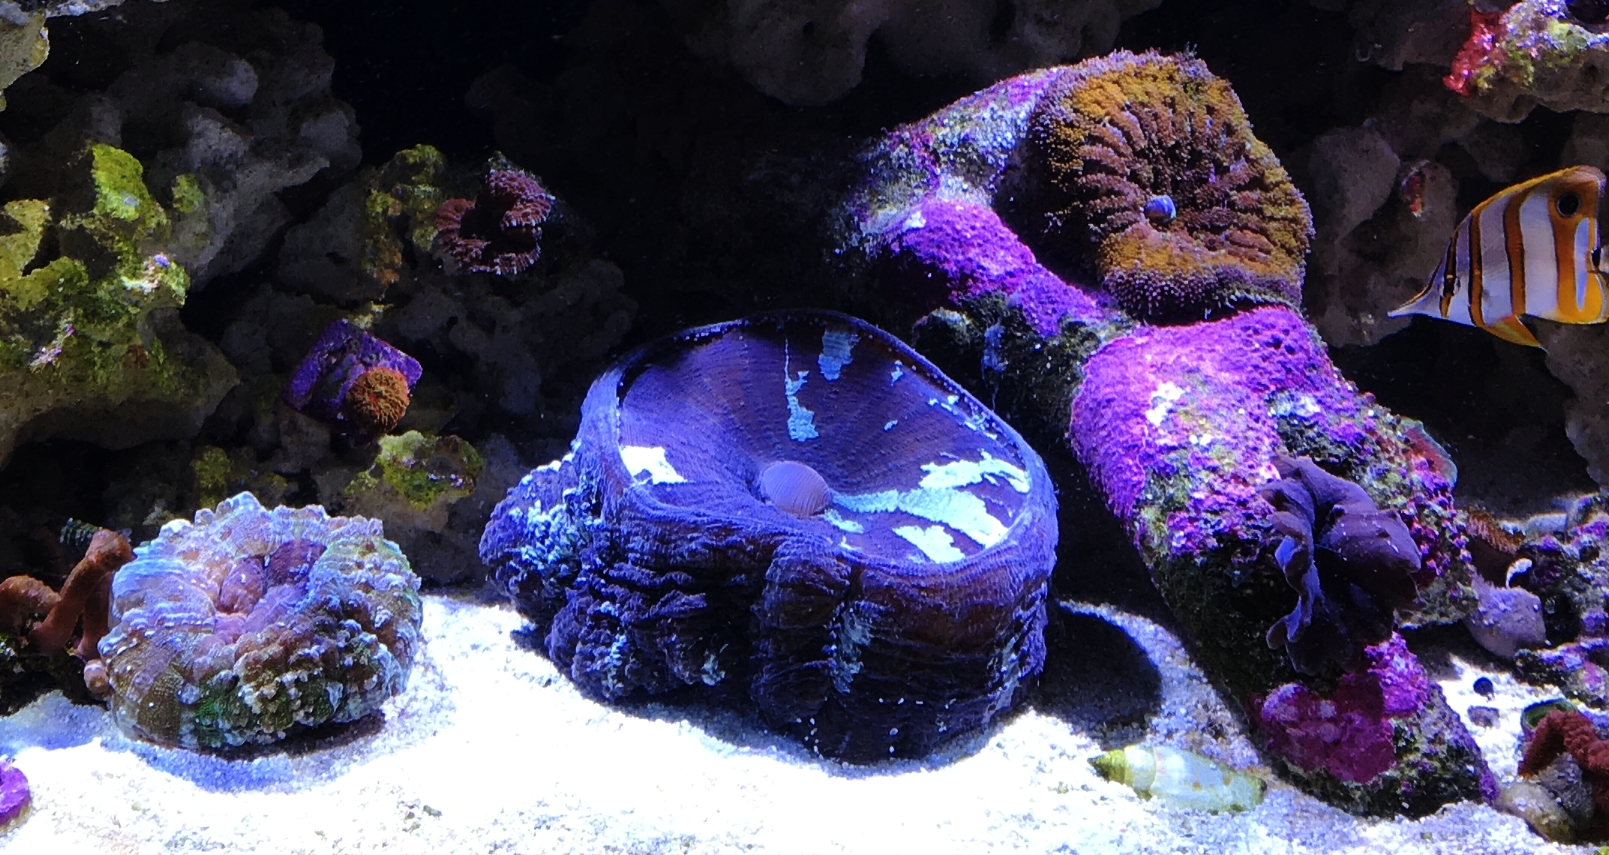 The purple monster upon introduction to my tank.